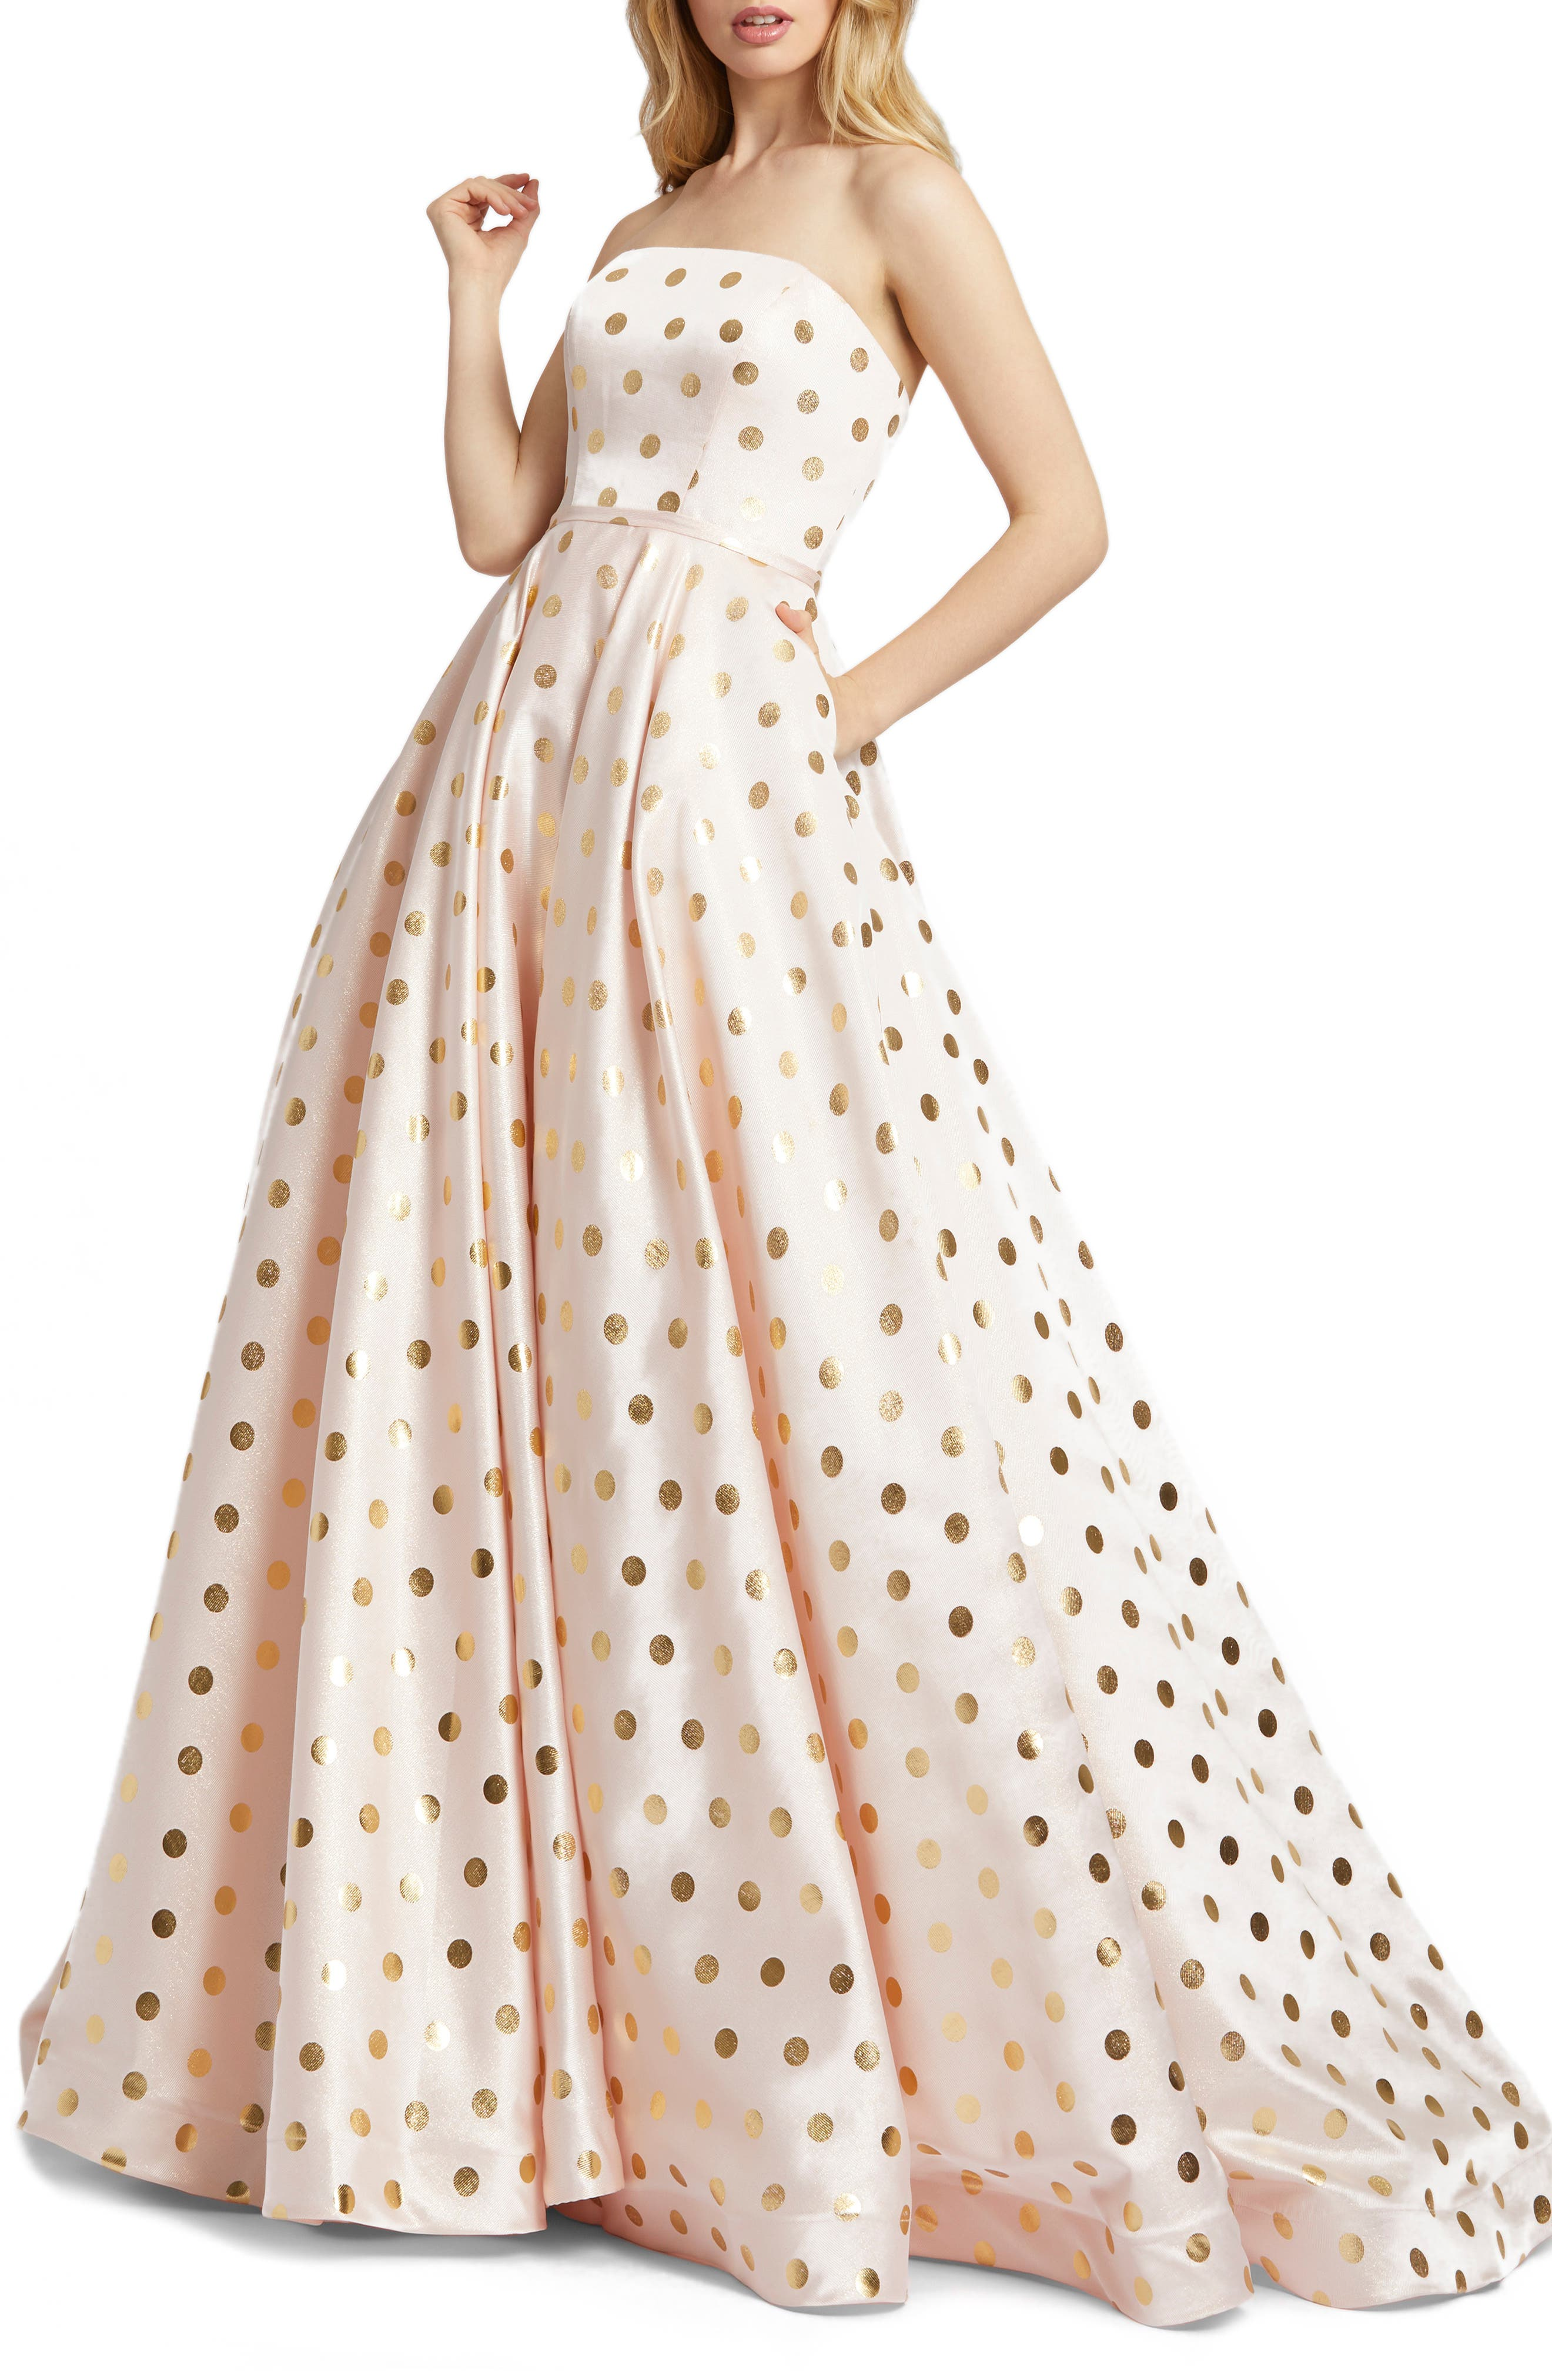 1950s Formal Dresses & Evening Gowns to Buy Womens MAC Duggal Strapless Polka Dot Ballgown $226.80 AT vintagedancer.com